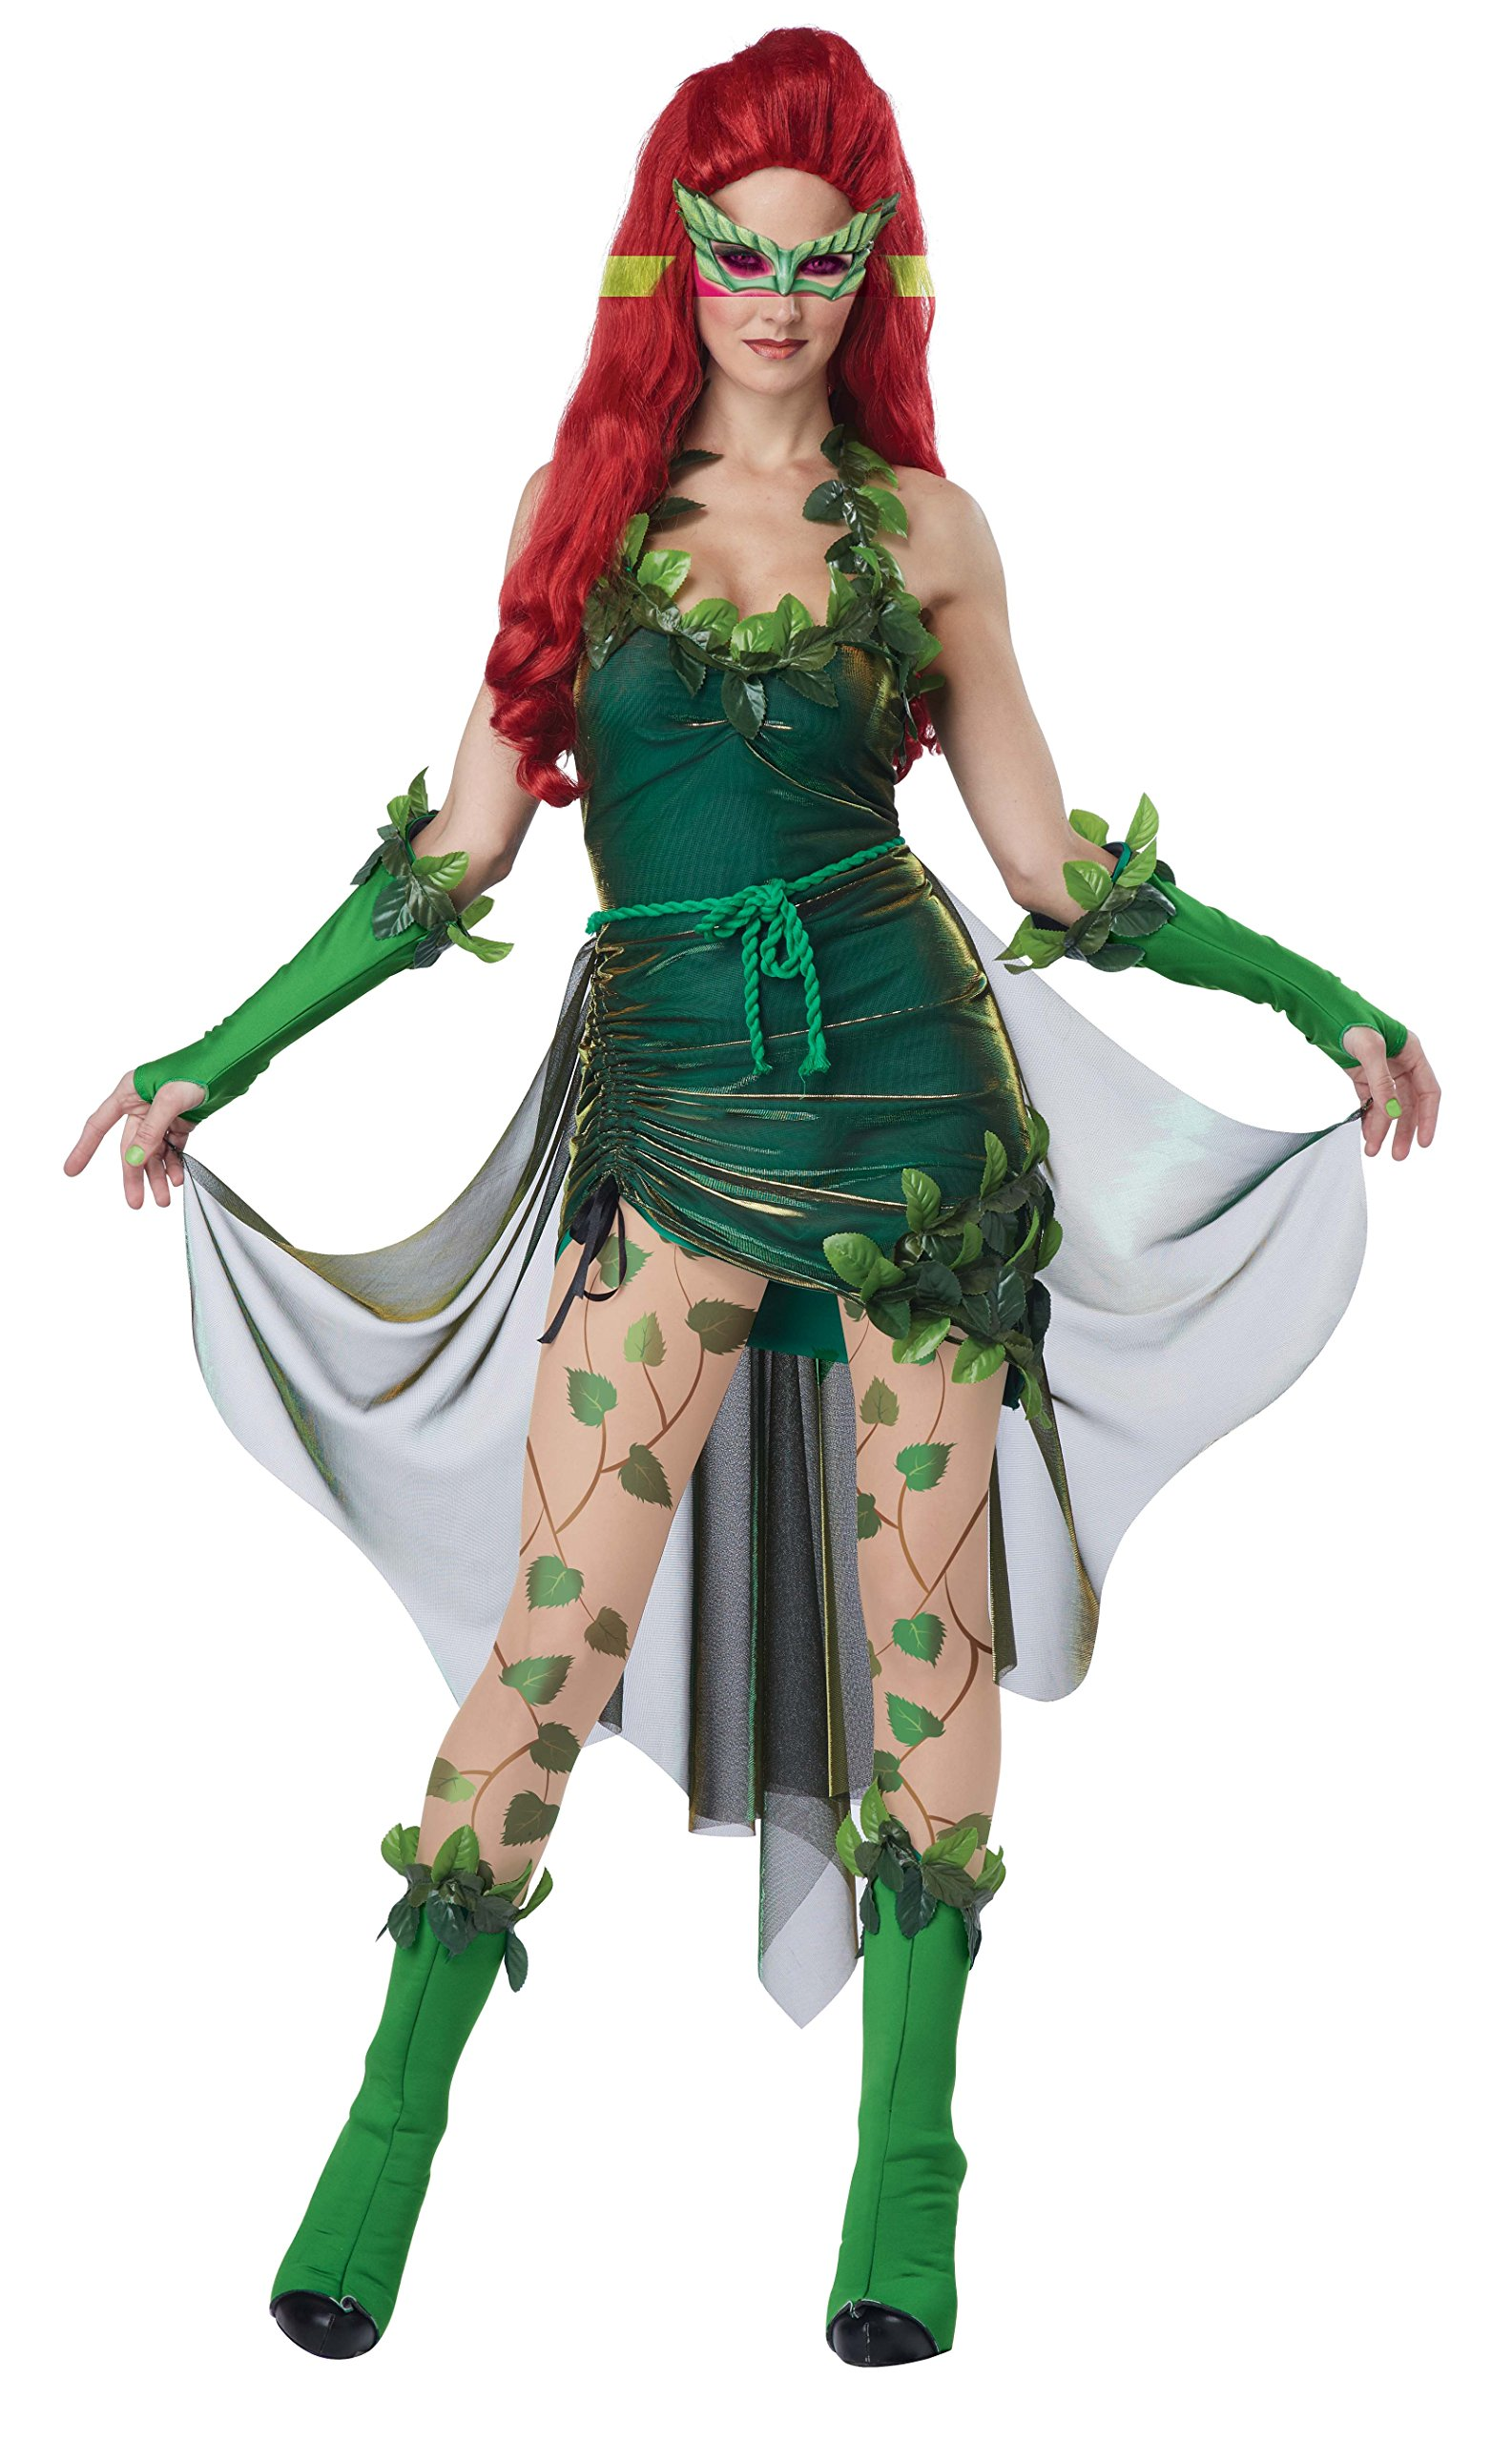 California Costumes Women's Adult Lethal Beauty Costume and Wig, Green, Small